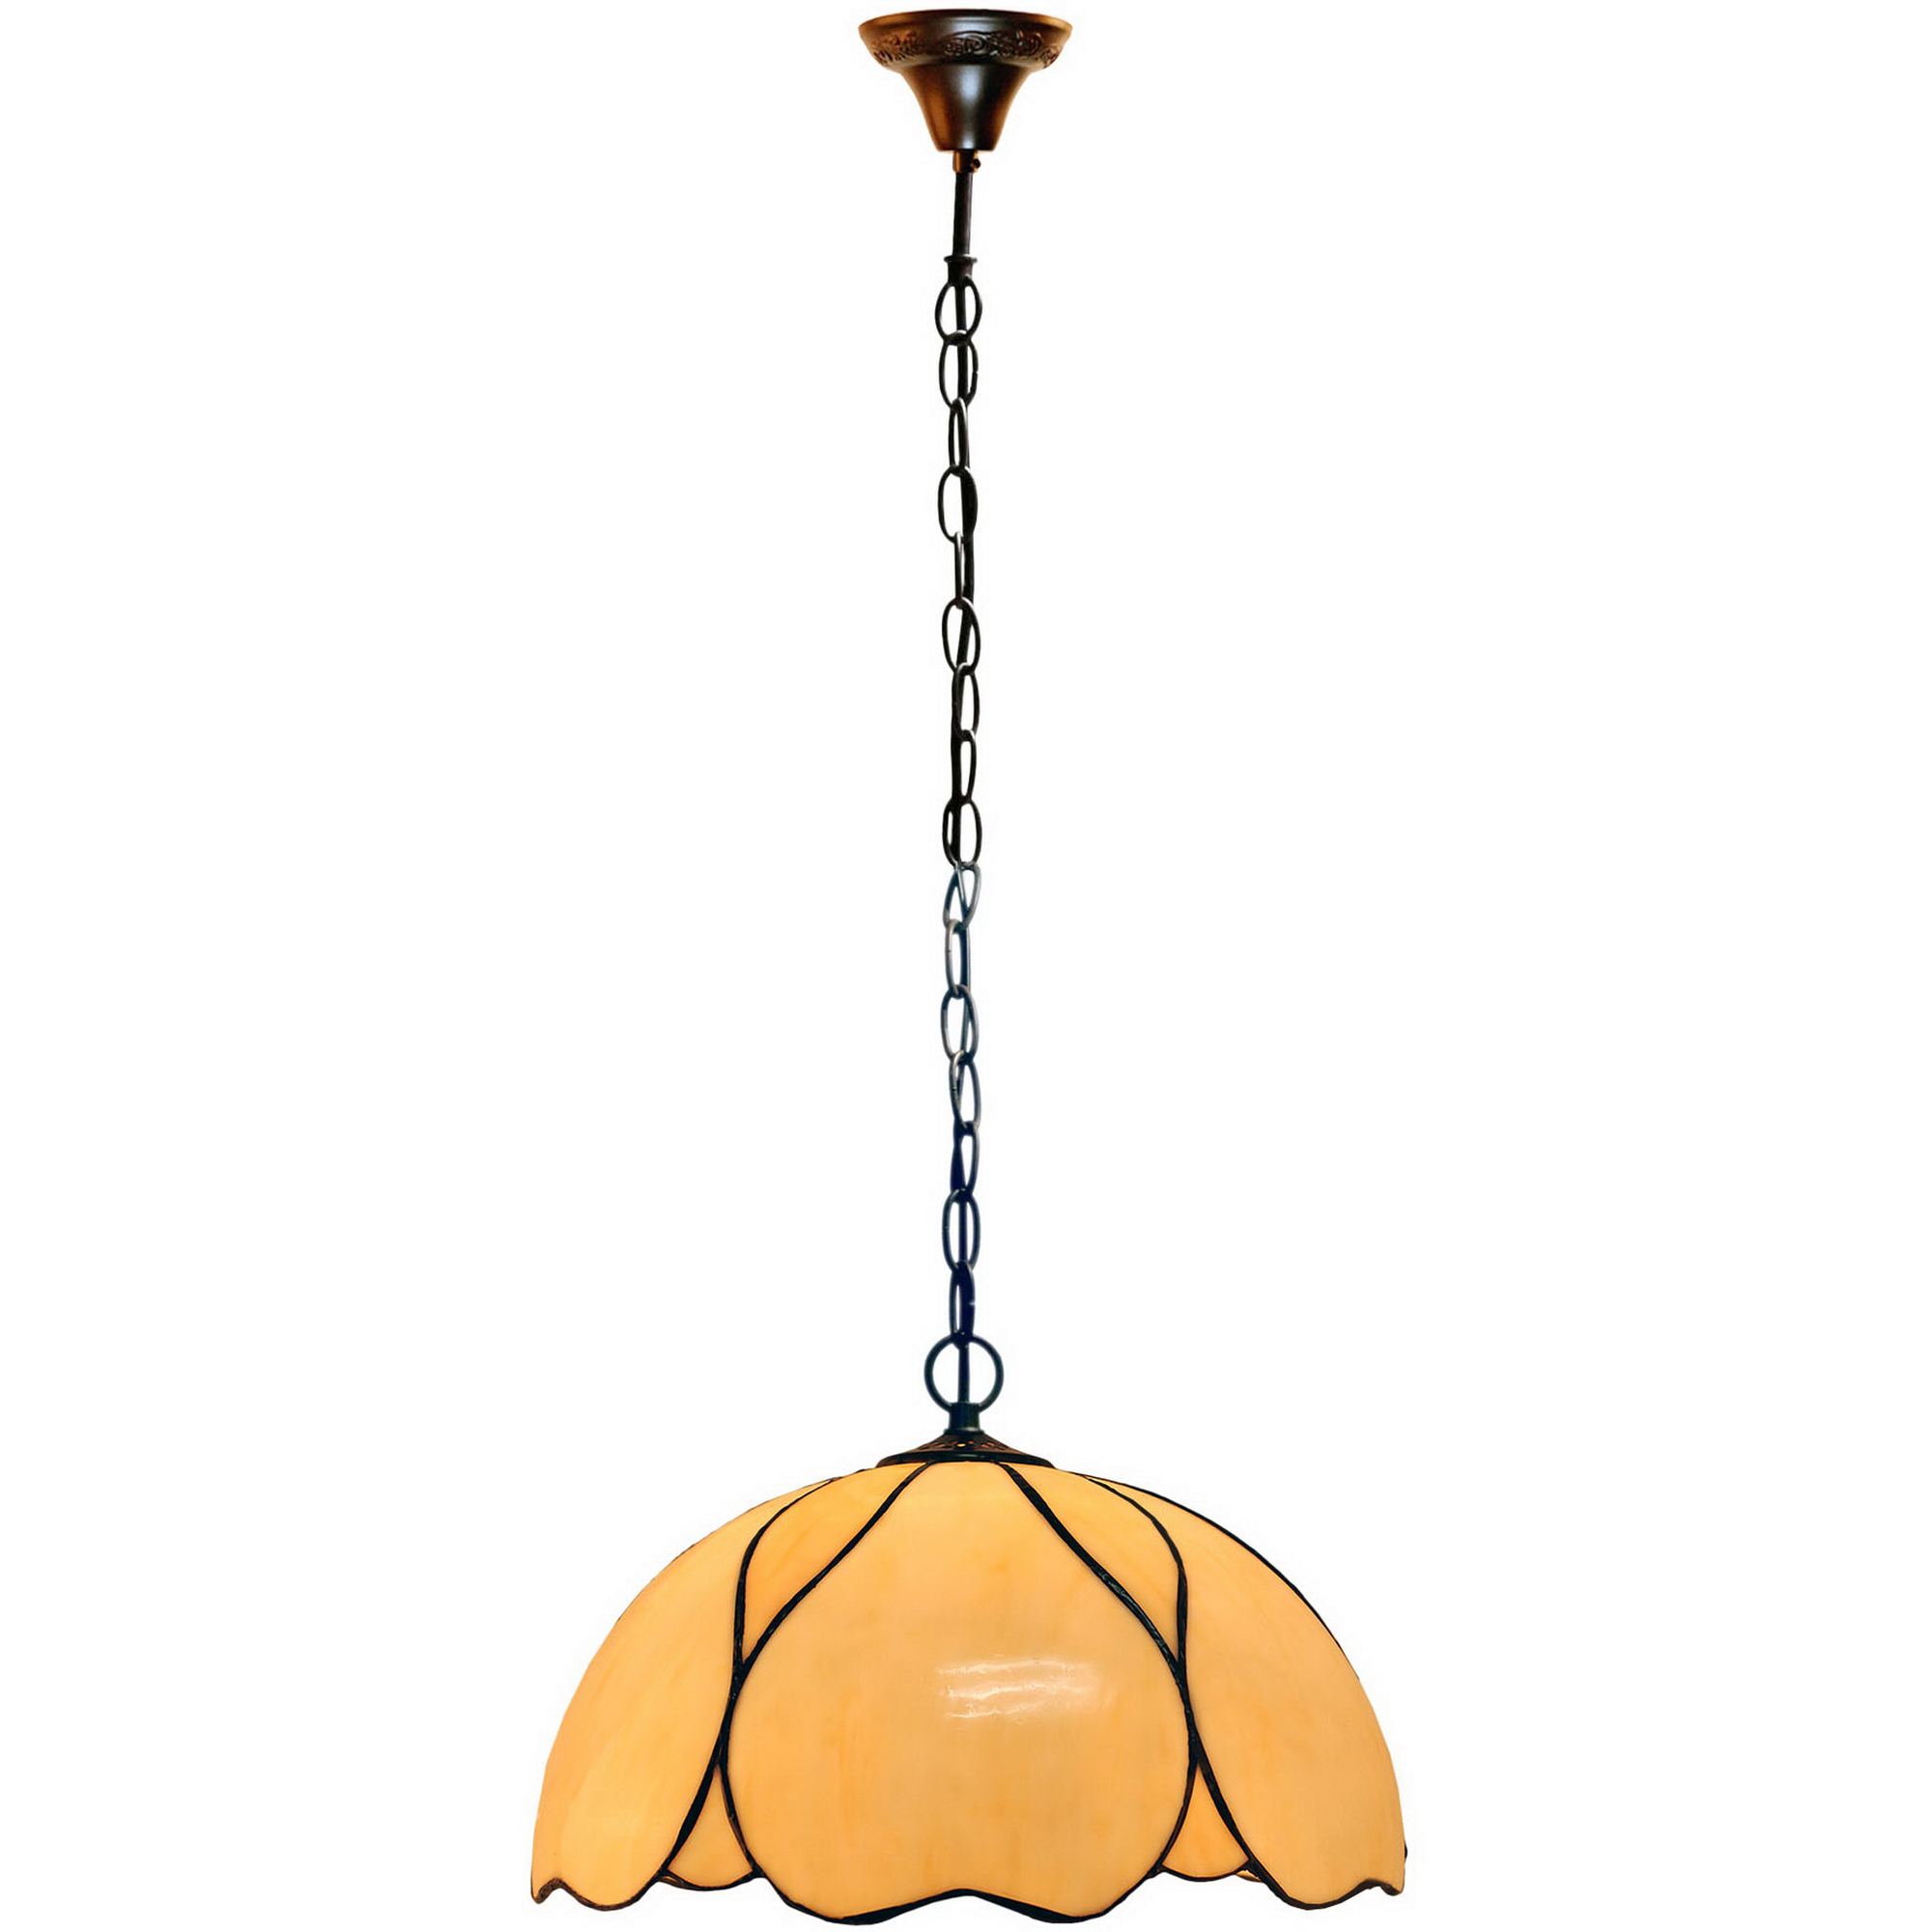 tiffany style pendant light fixture. SKU #JOAN1503 Off White Curved Petal Tiffany Style Pendant Light Is Also Sometimes Listed Under The Following Manufacturer Numbers: HDLC1401 Fixture L